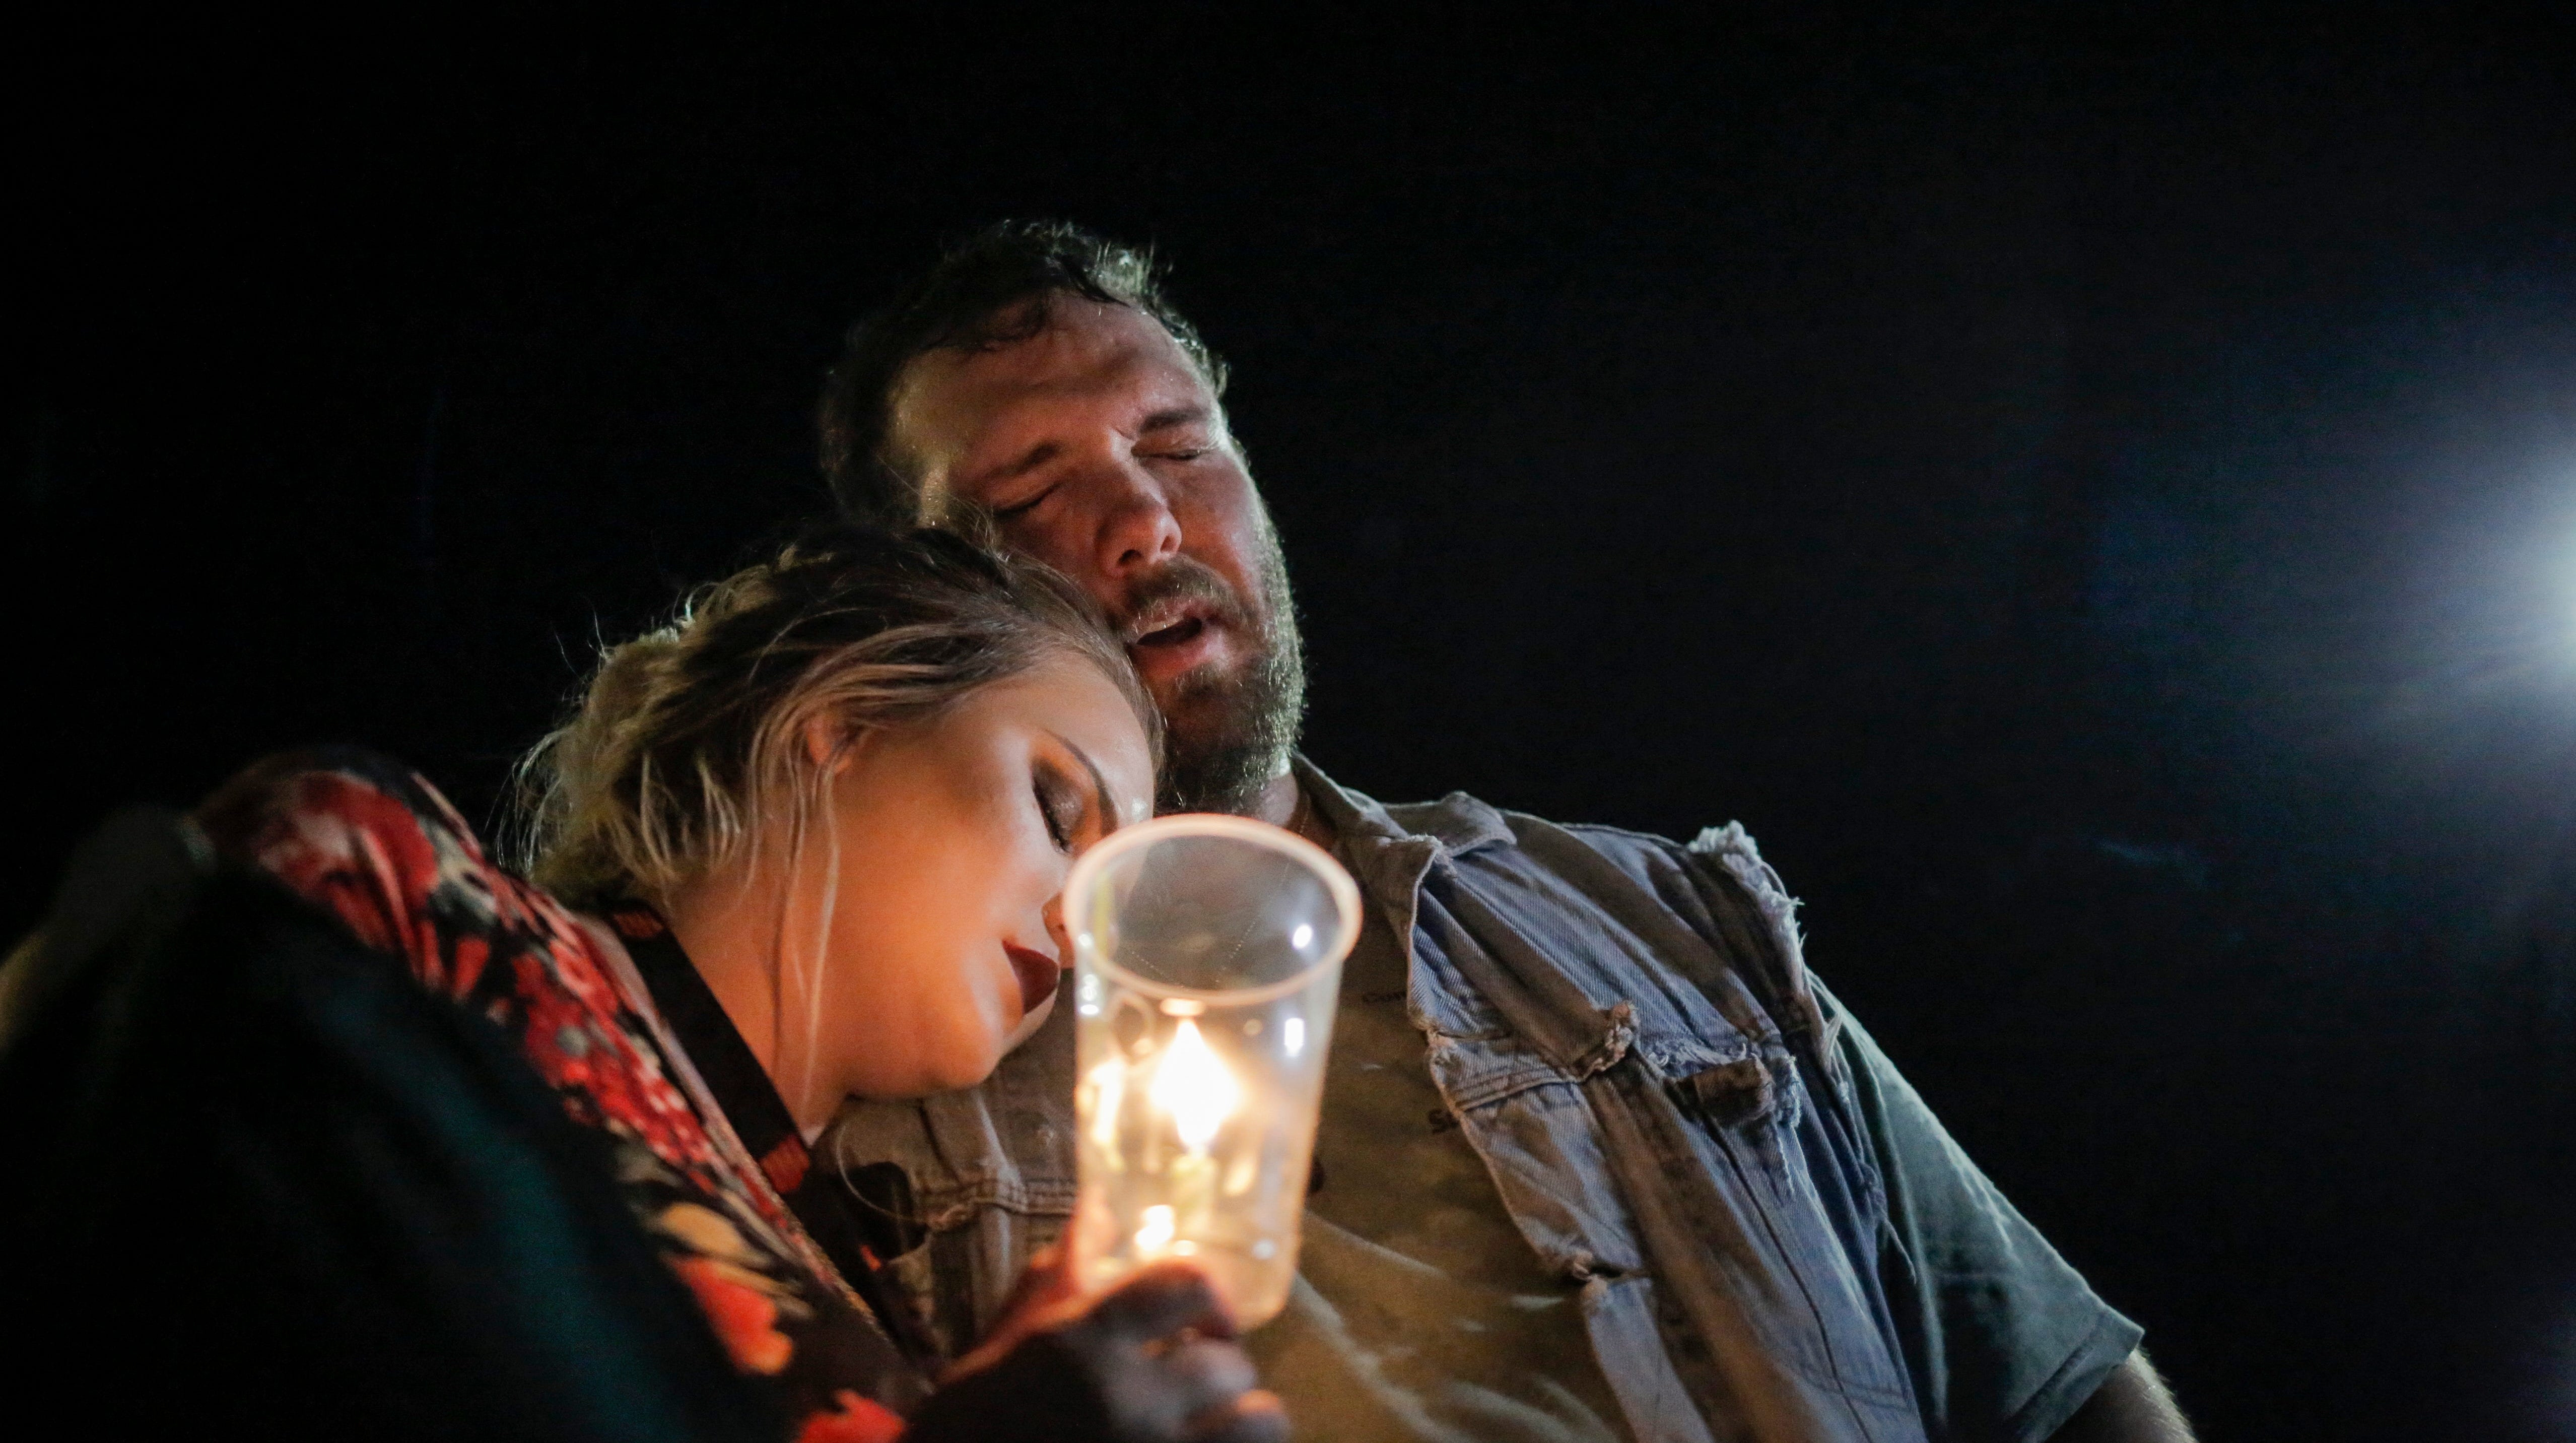 """Robert Montgomery of Branson, left, sings """"Amazing Grace"""" along with hundreds of community members gathered in the parking lot outside Ride the Ducks, lighting candles and placing flowers on the cars of two victims from the duck boat accident in Branson, Mo. on Friday, July 20, 2018. On Thursday, July 19, 2018, 17 people were killed when a duck boat, an amphibious vehicle, capsized on Table Rock Lake."""